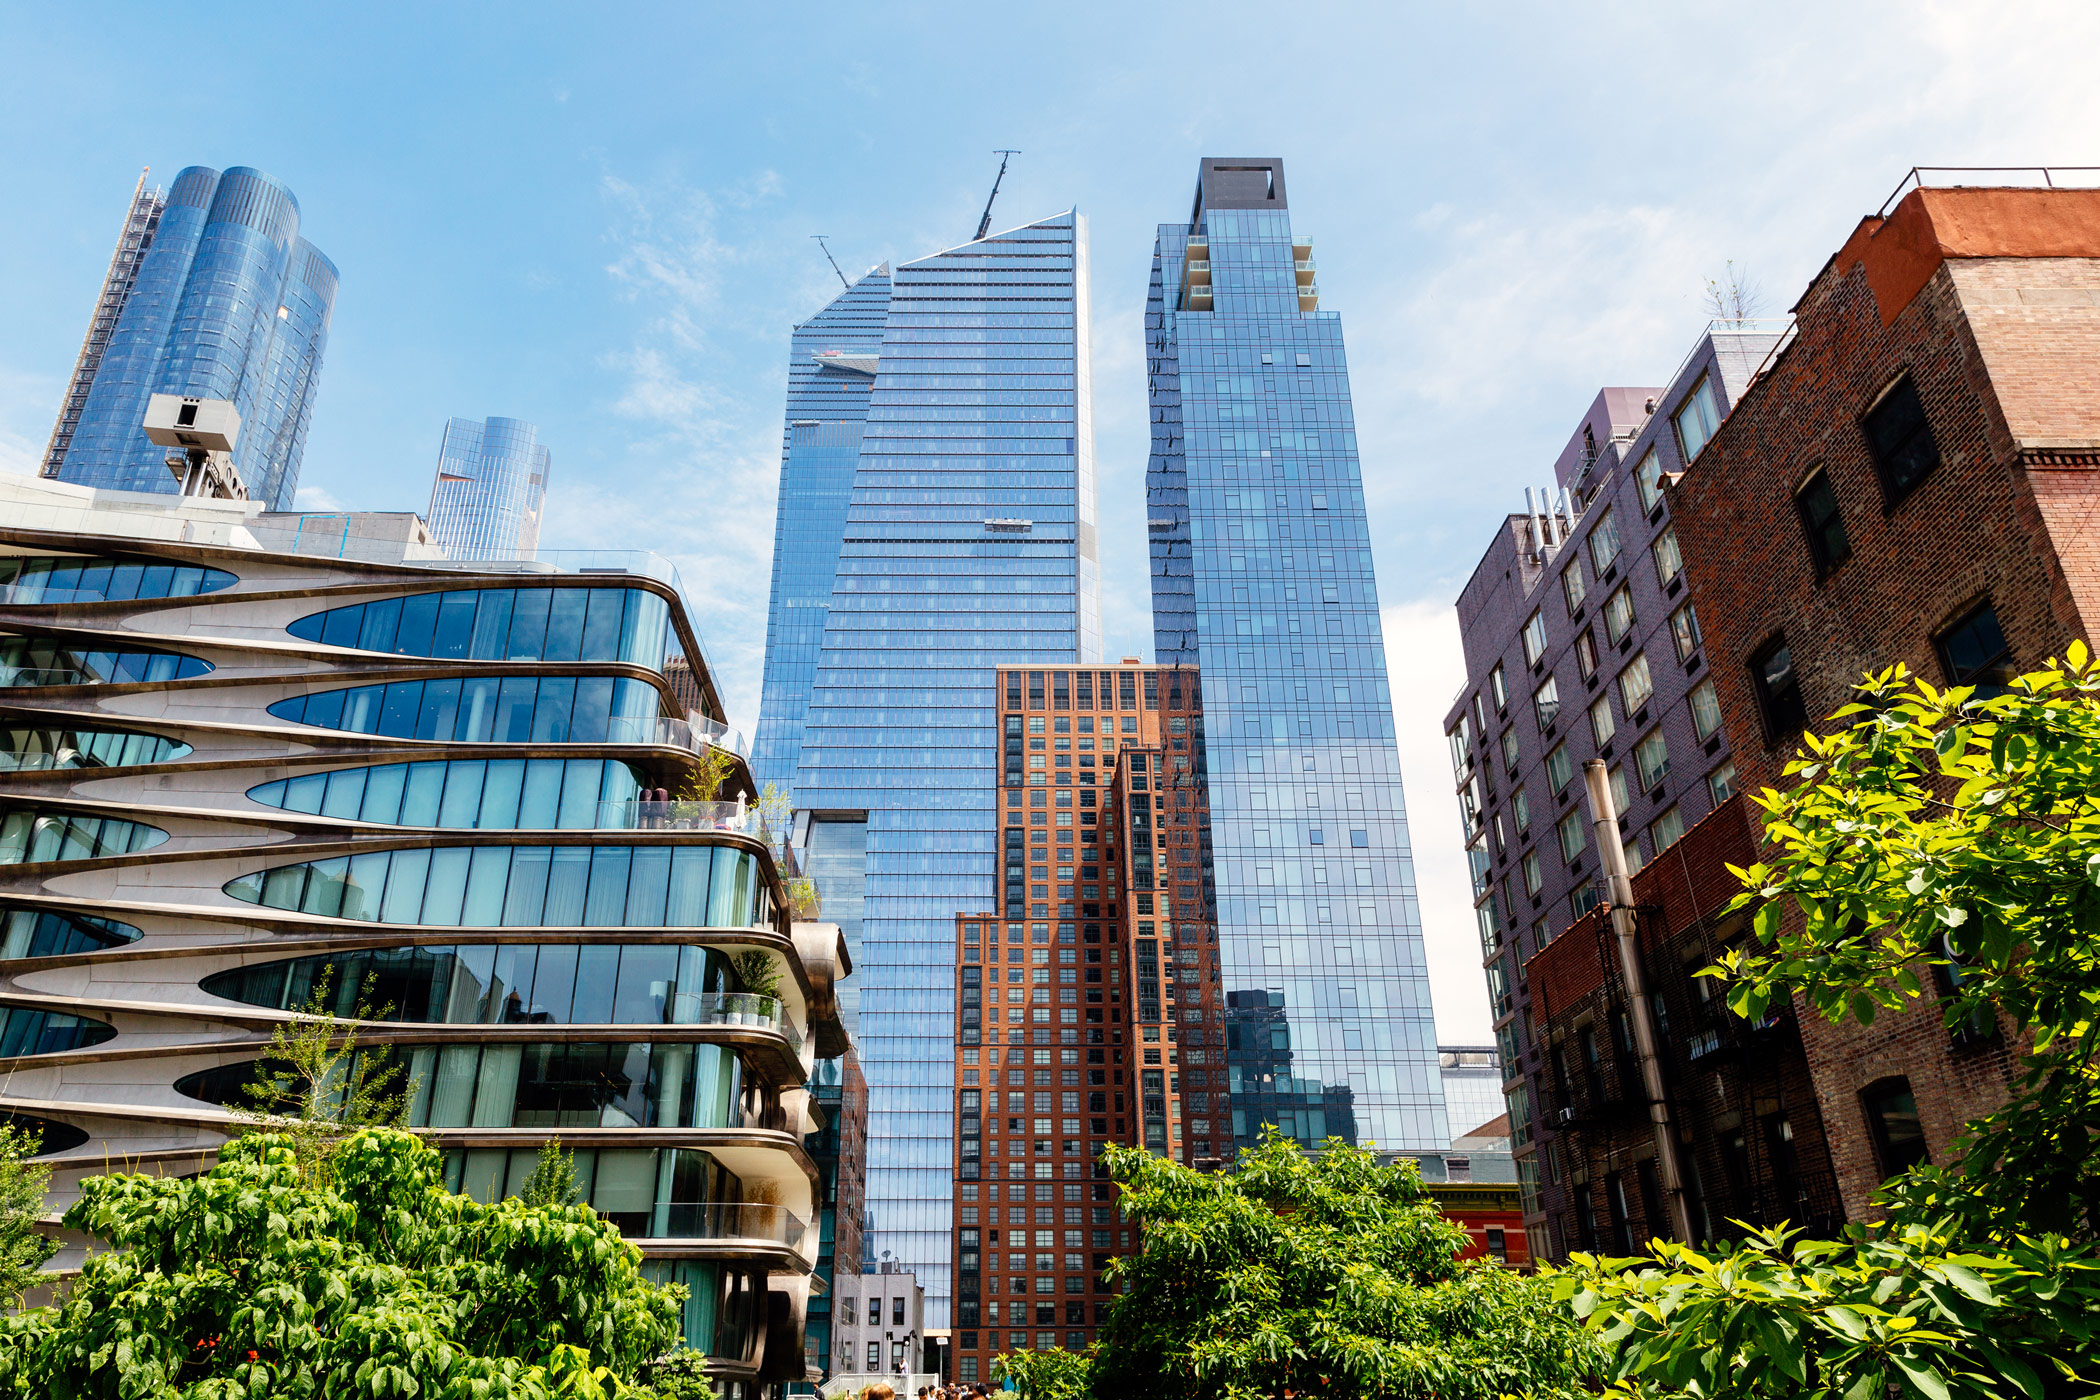 Hotel demand gains for the week of May 22 were highest in New York City, despite that market selling less than 50% of the rooms that it did during the same week in 2019. (Getty Images)